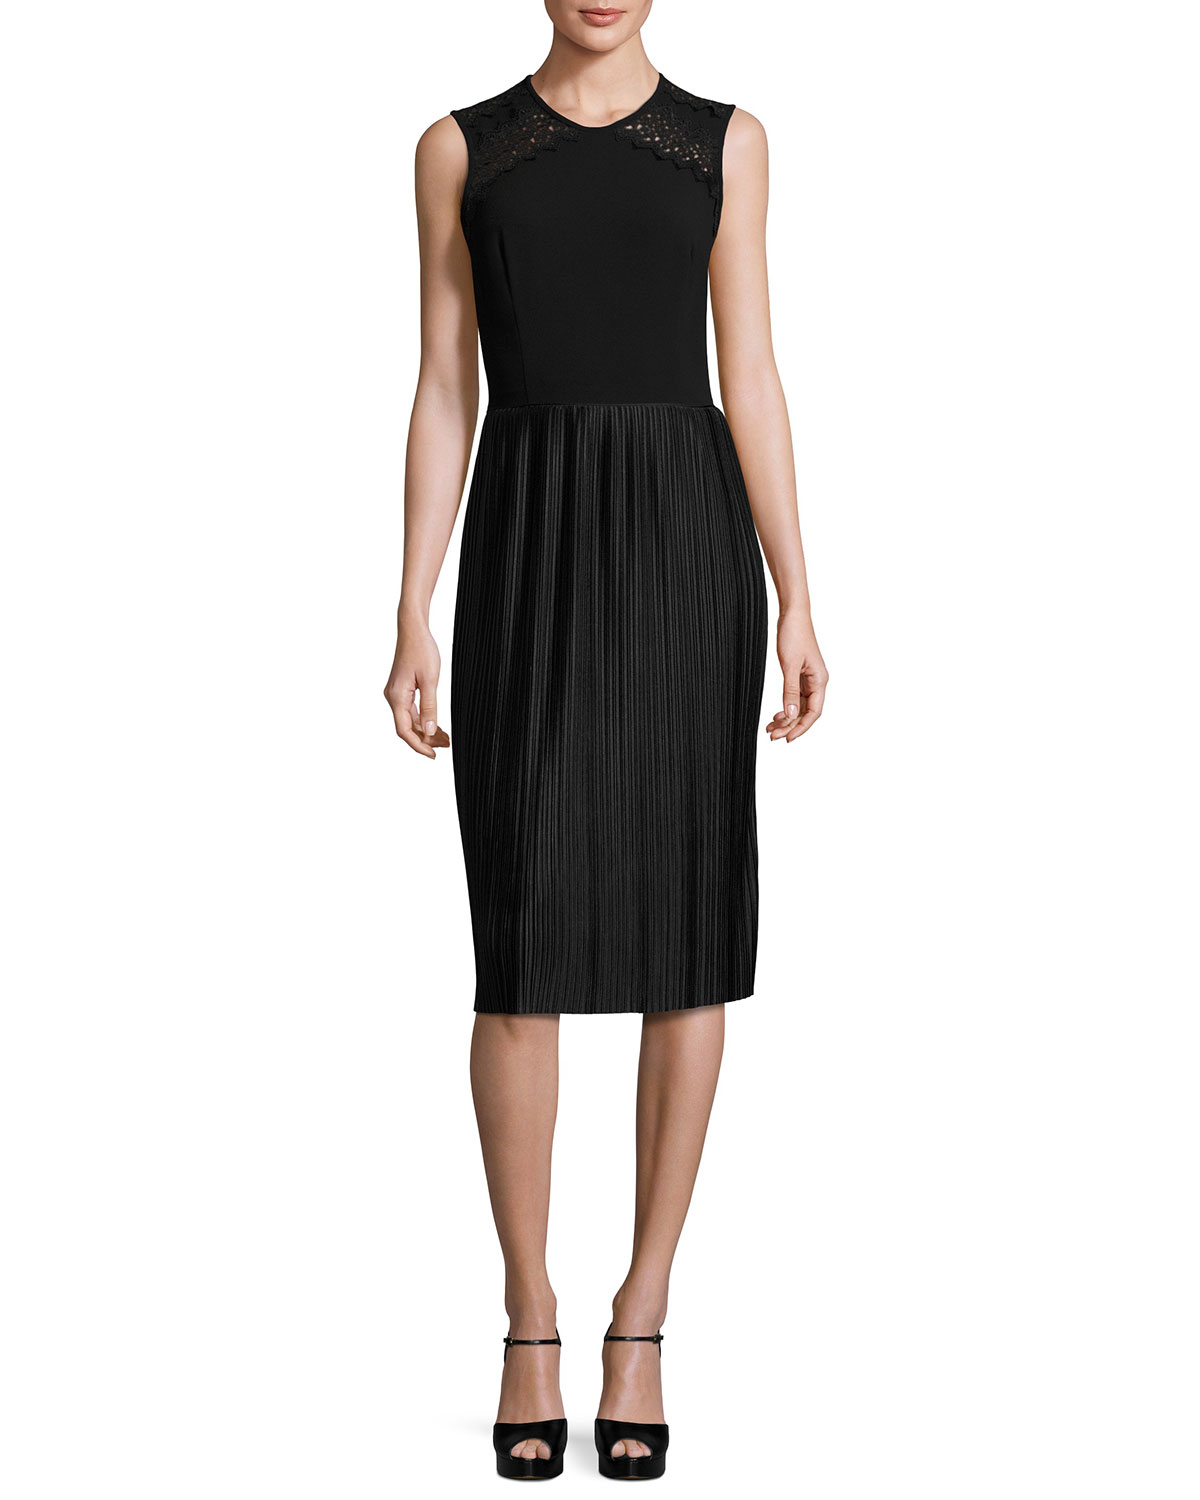 Sleeveless Pleated Cocktail Dress, Black